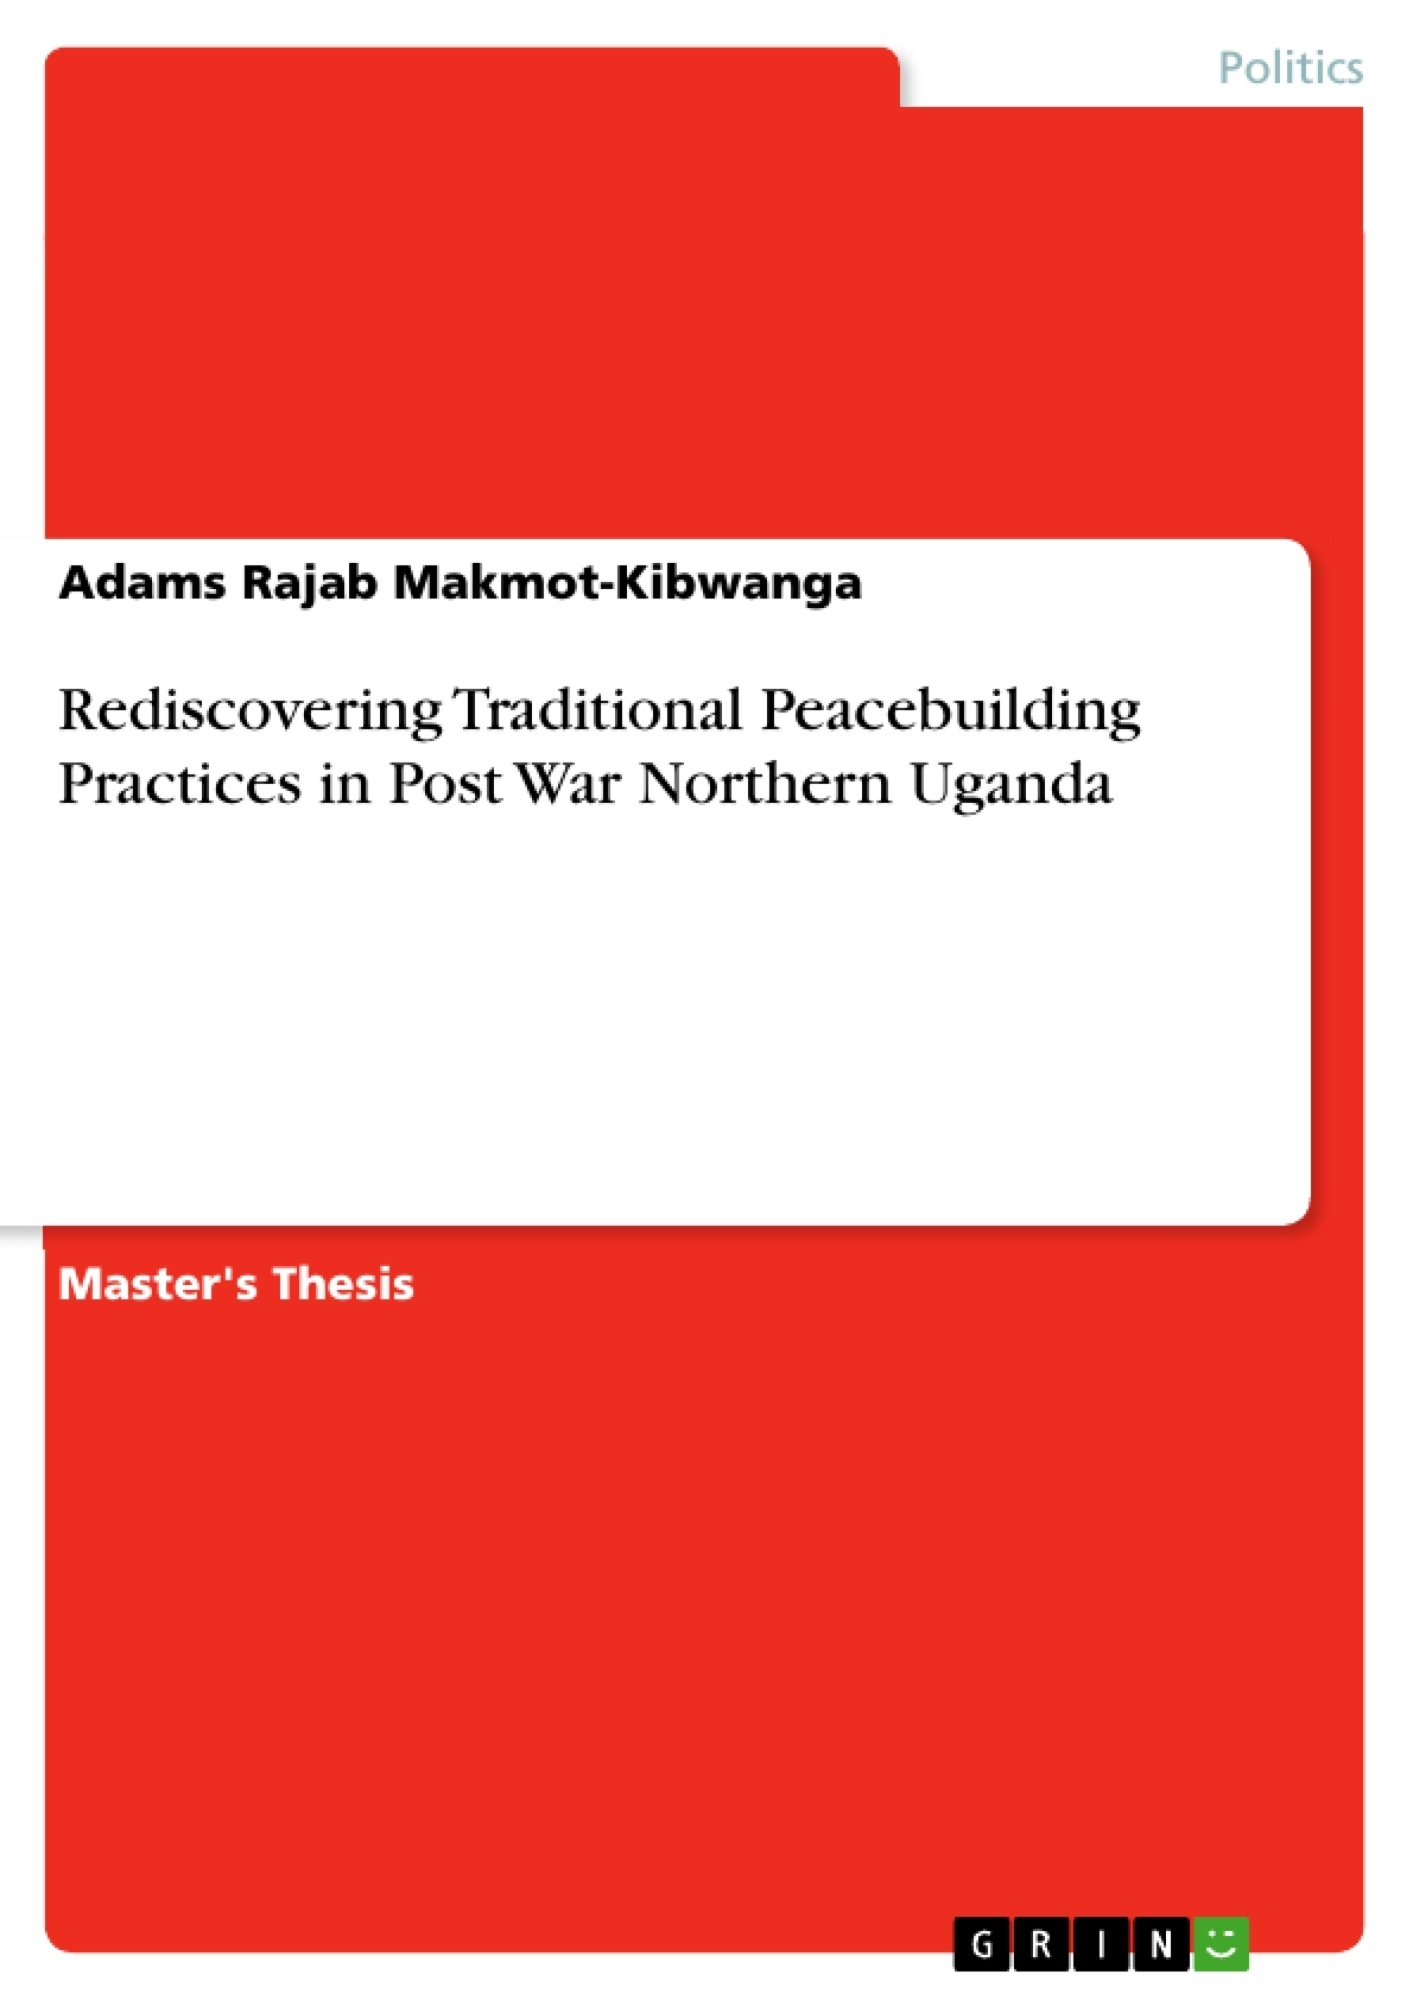 Title: Rediscovering Traditional Peacebuilding Practices in Post War Northern Uganda